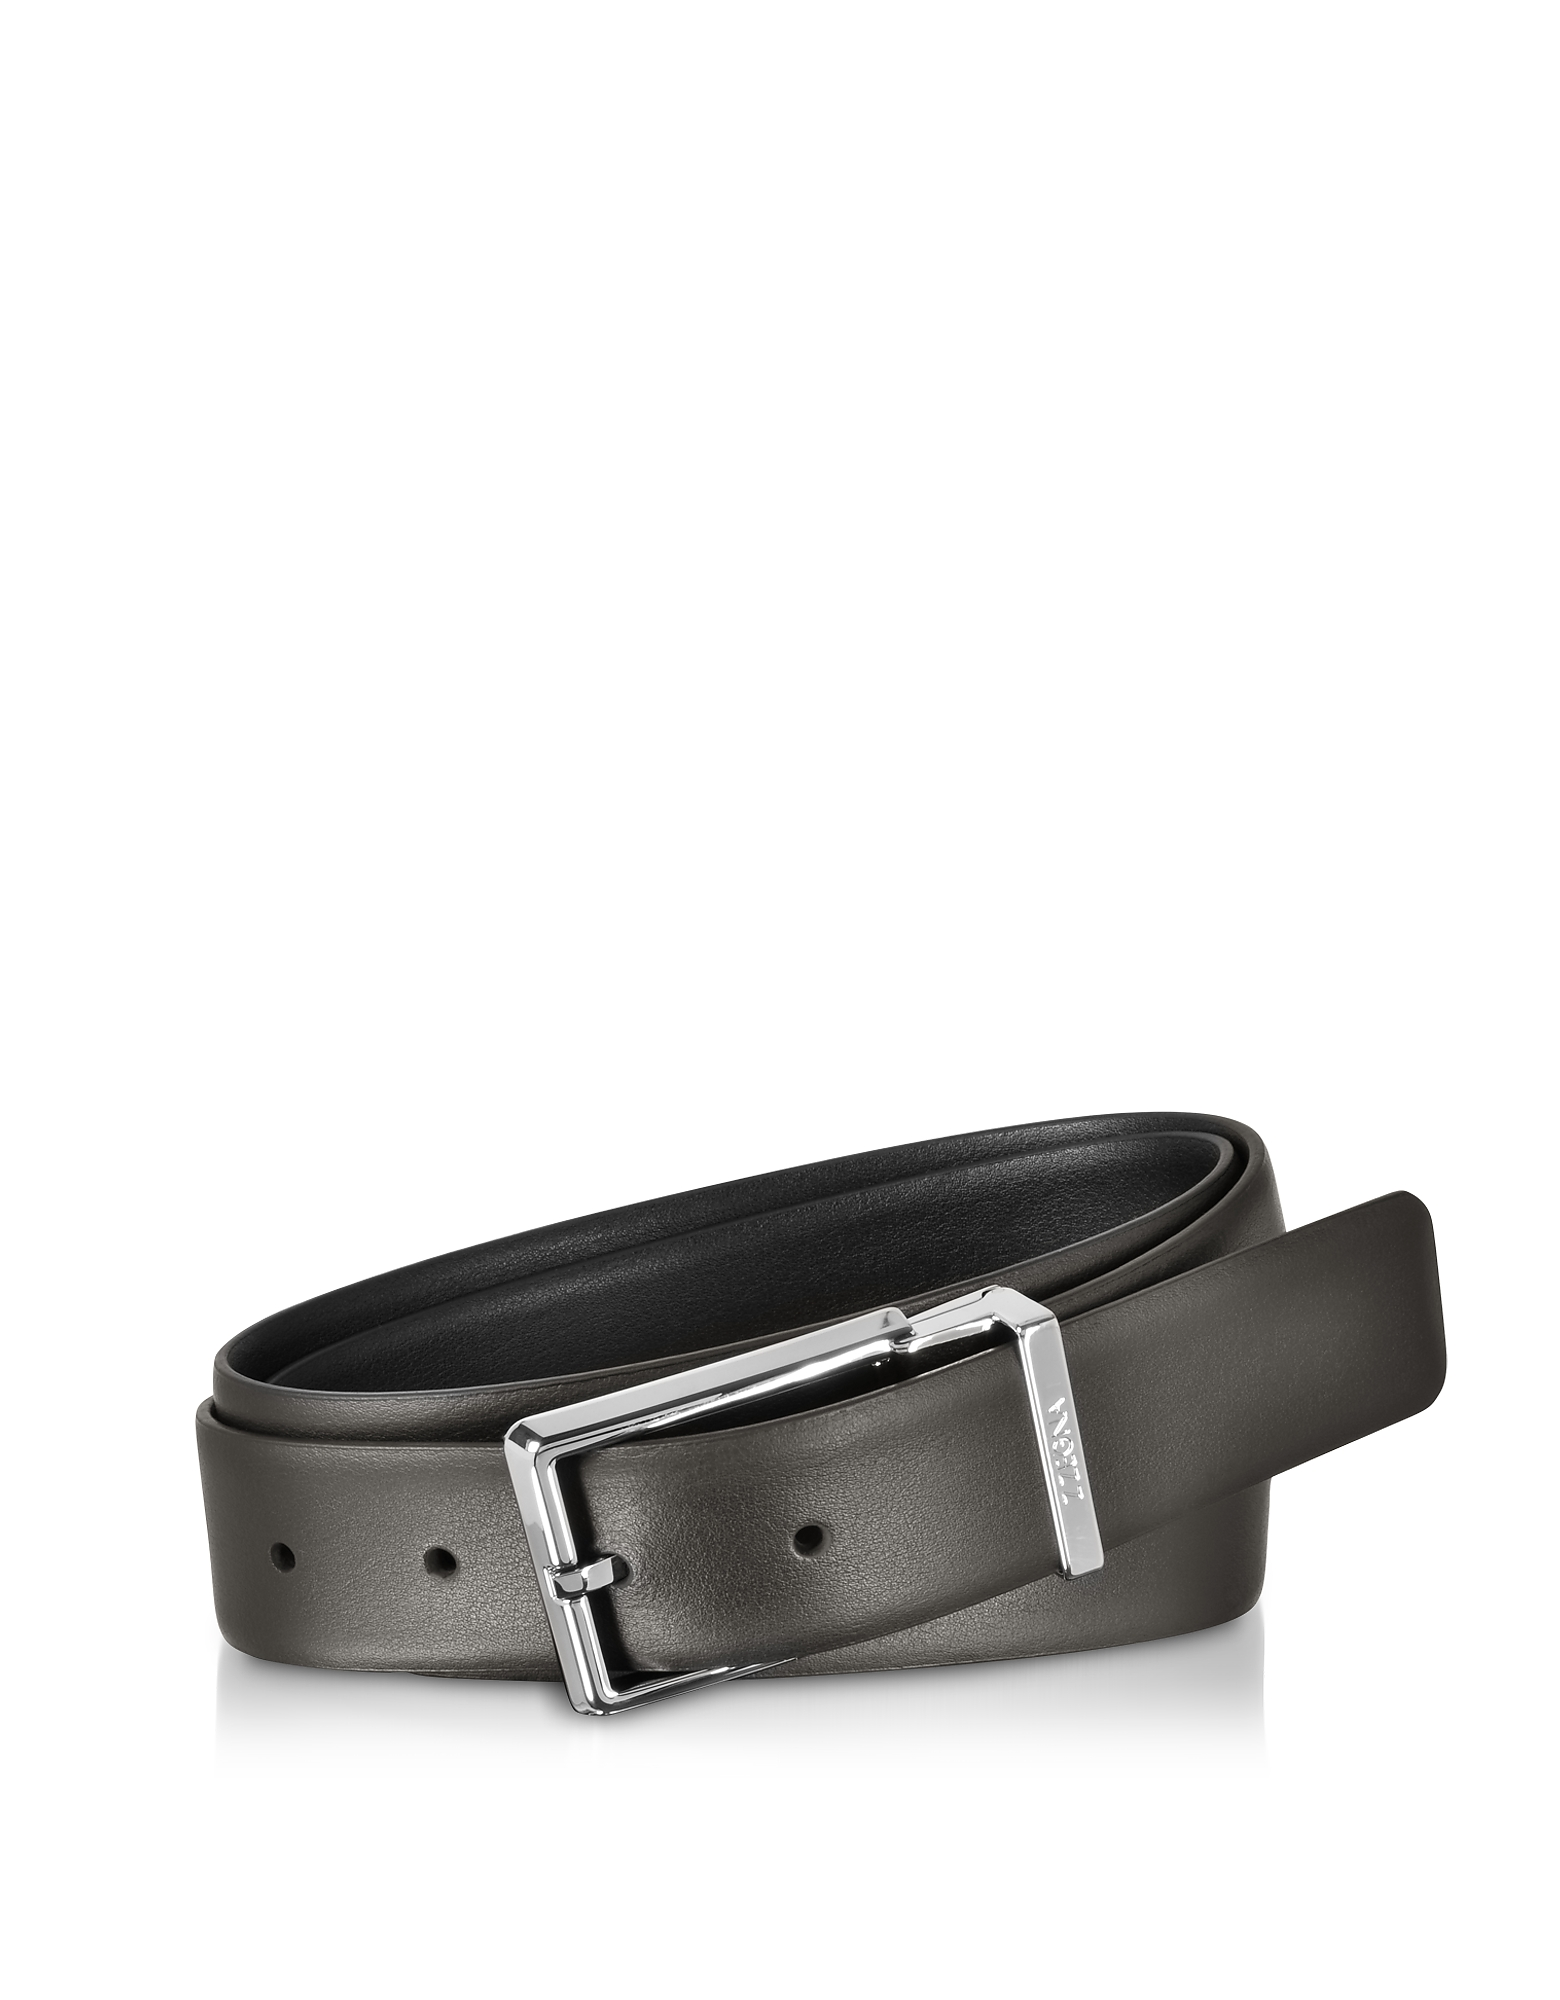 Two Tone Leather Adjustable and Reversible Men's Belt